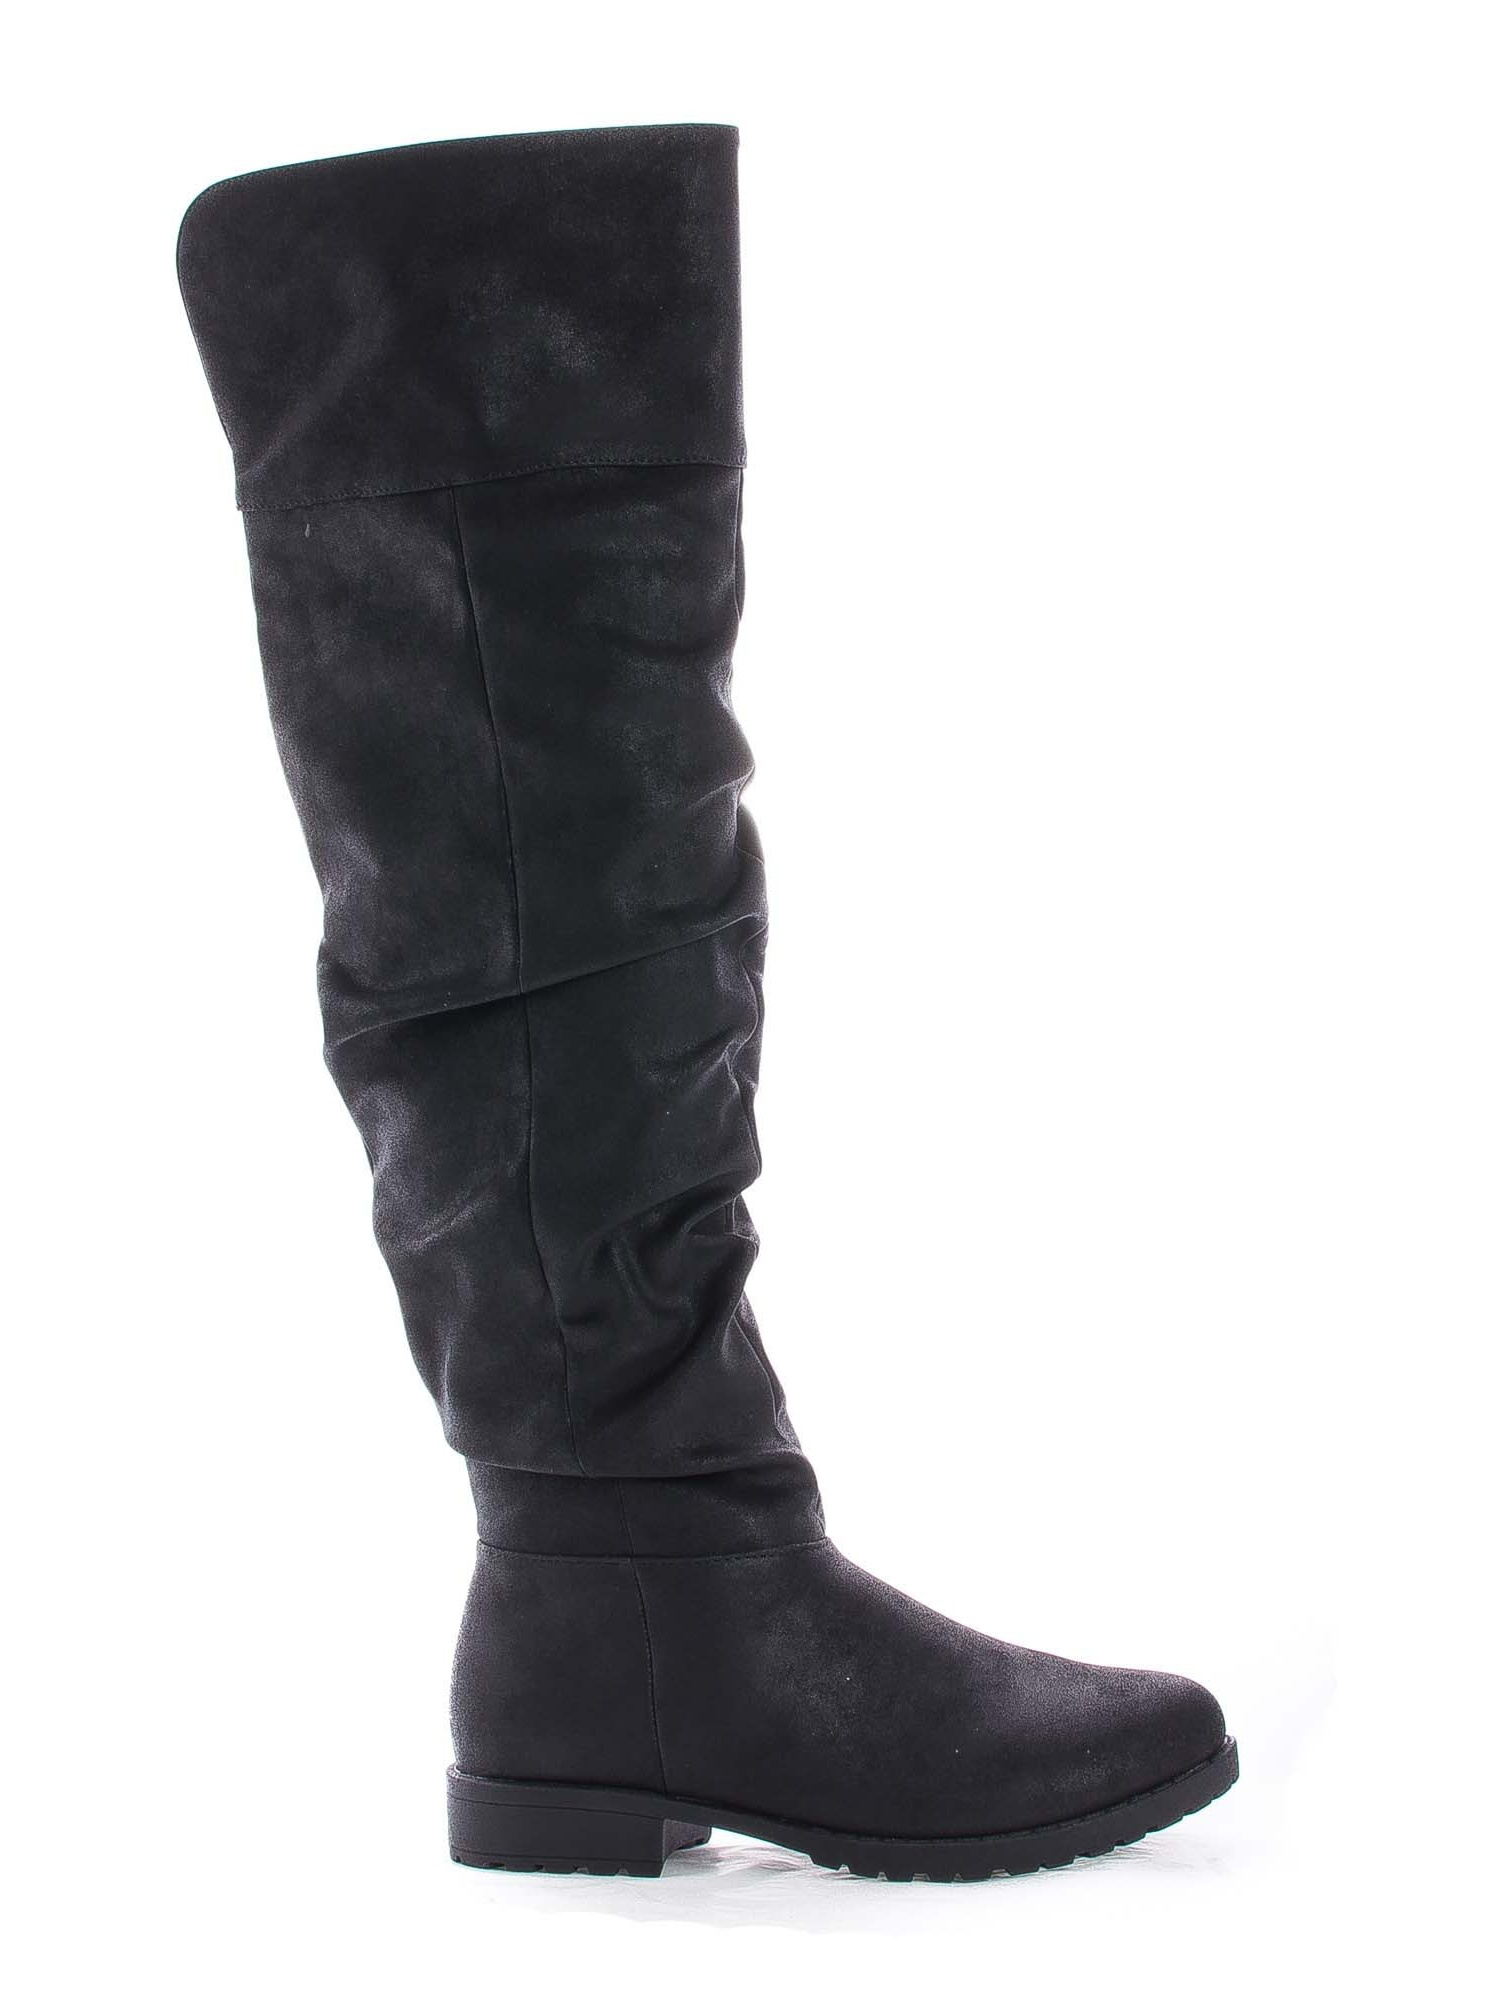 Monterey06 by Bamboo, Over The Knee Slouchy Round Toe Riding Boots